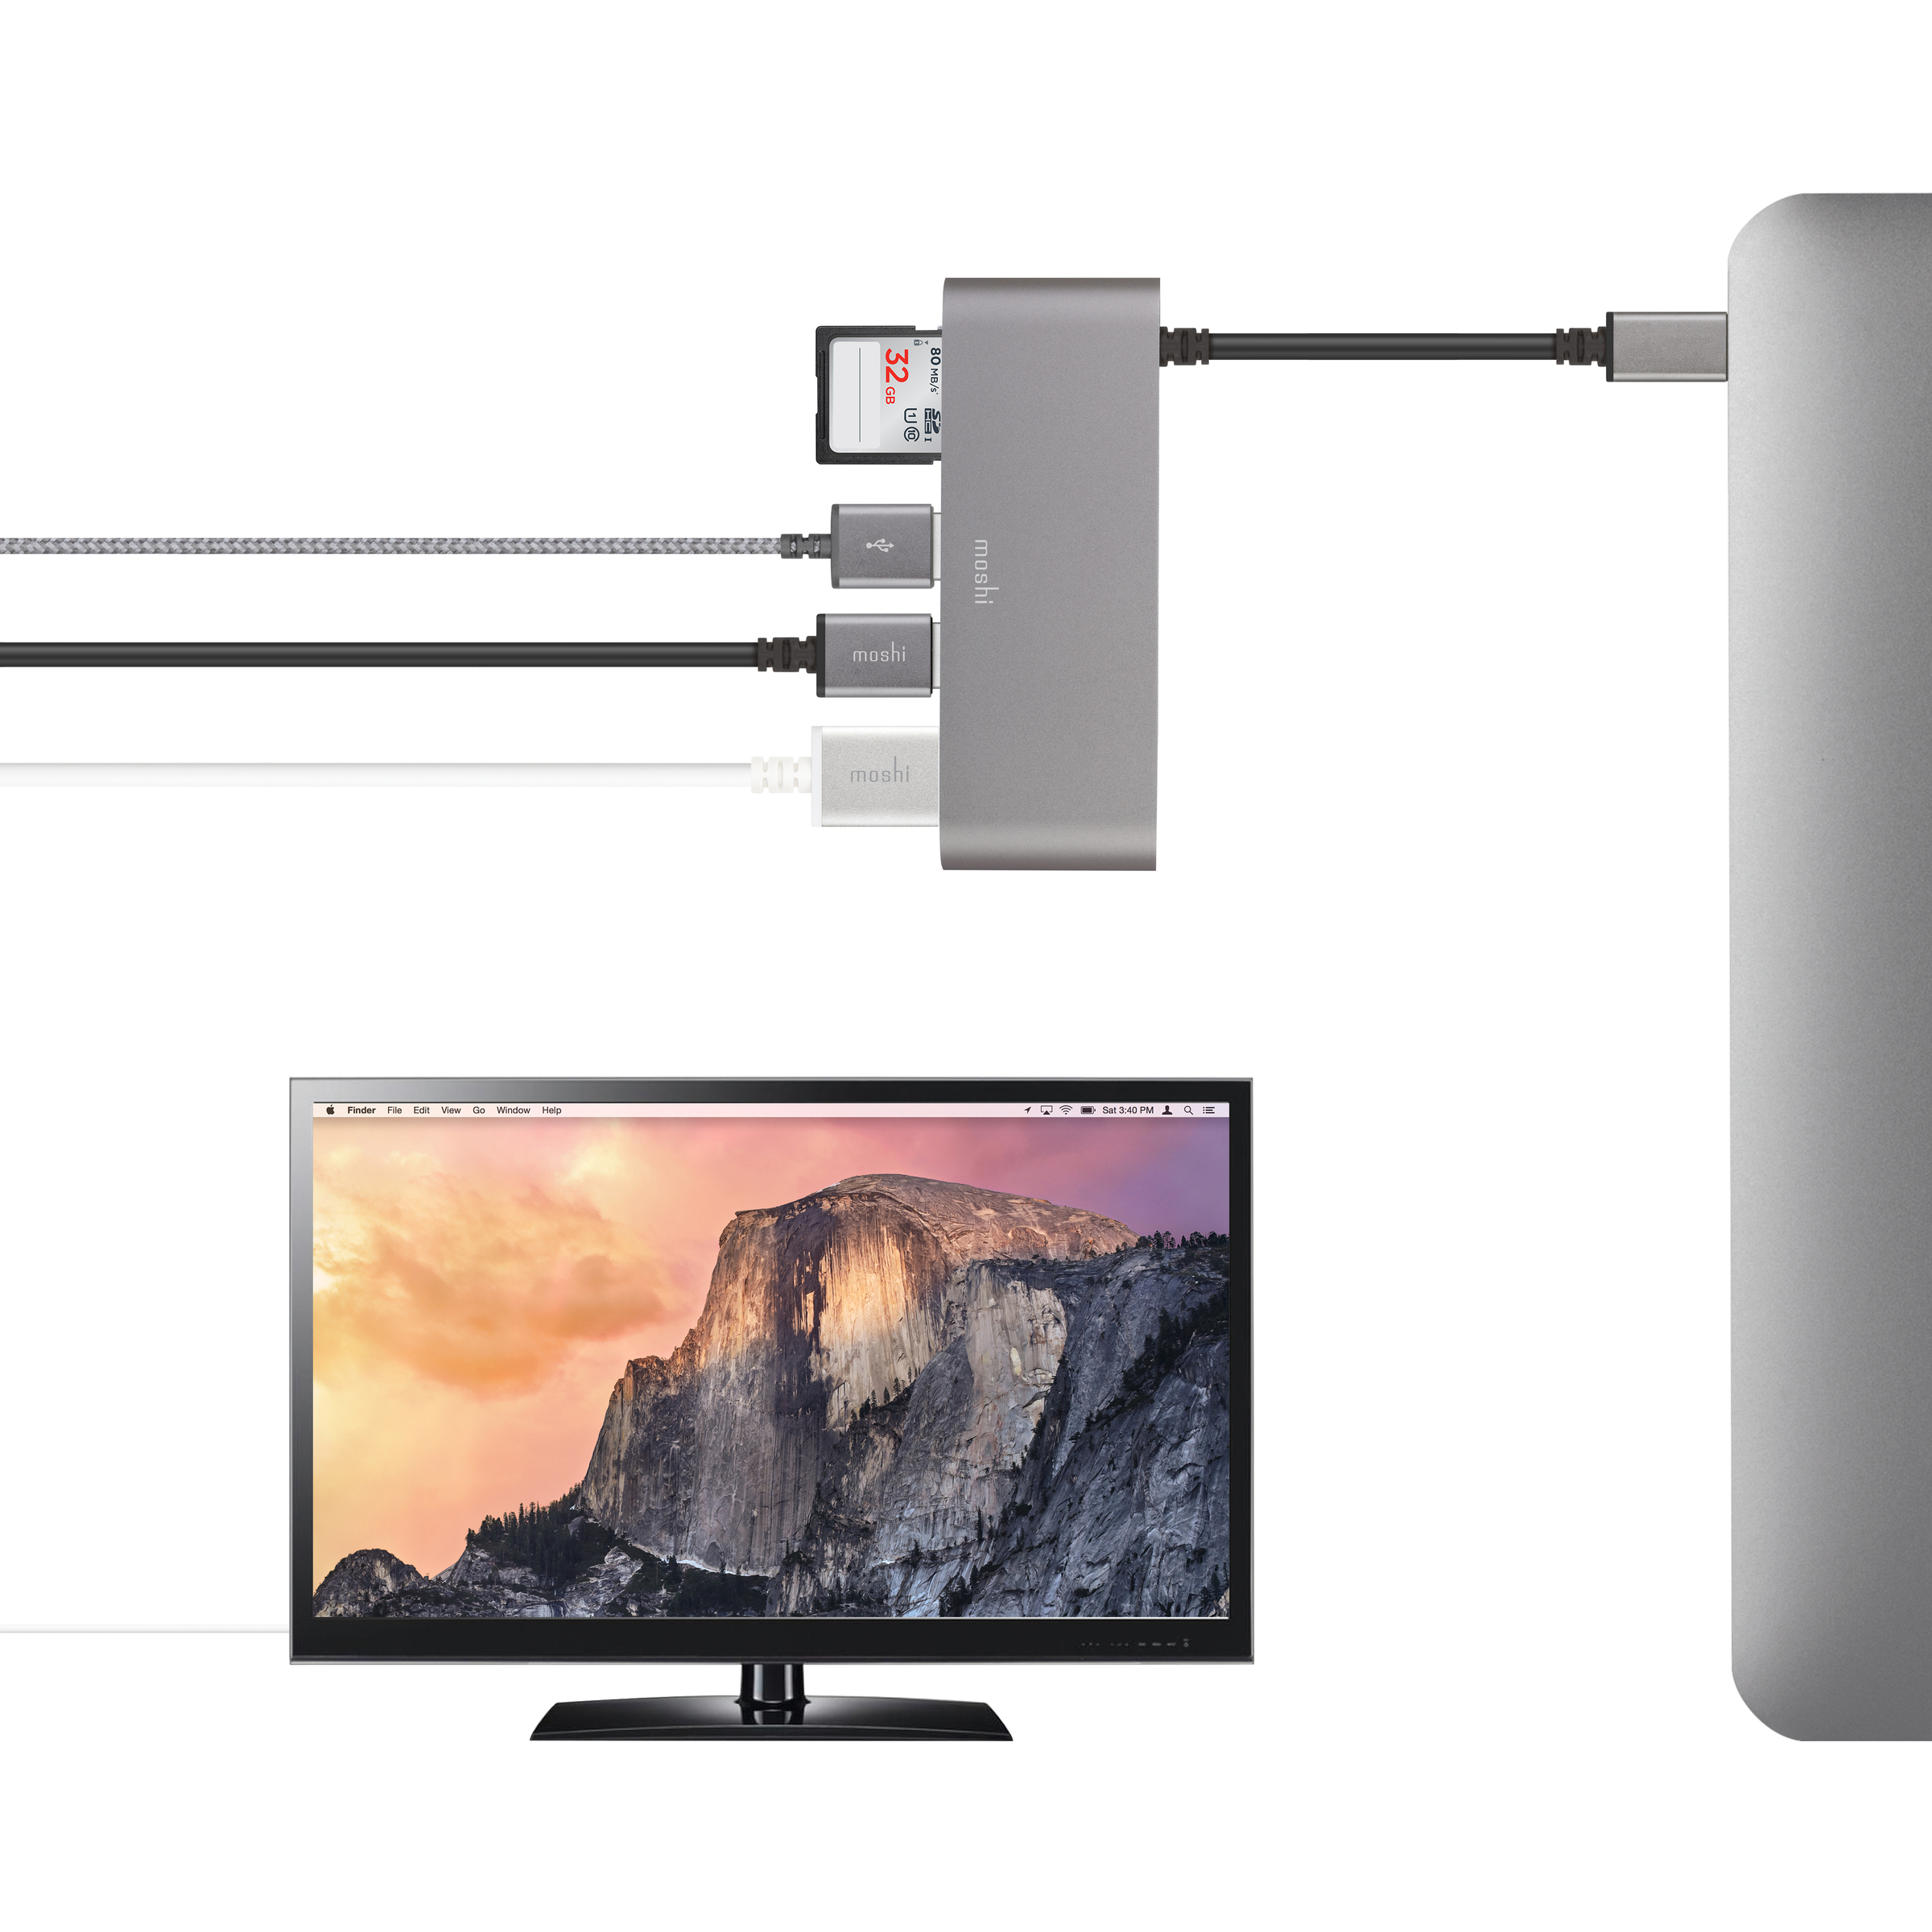 USB-C_Multimedia_Adapter_05_with_MBP - Ginnie Huang.jpg